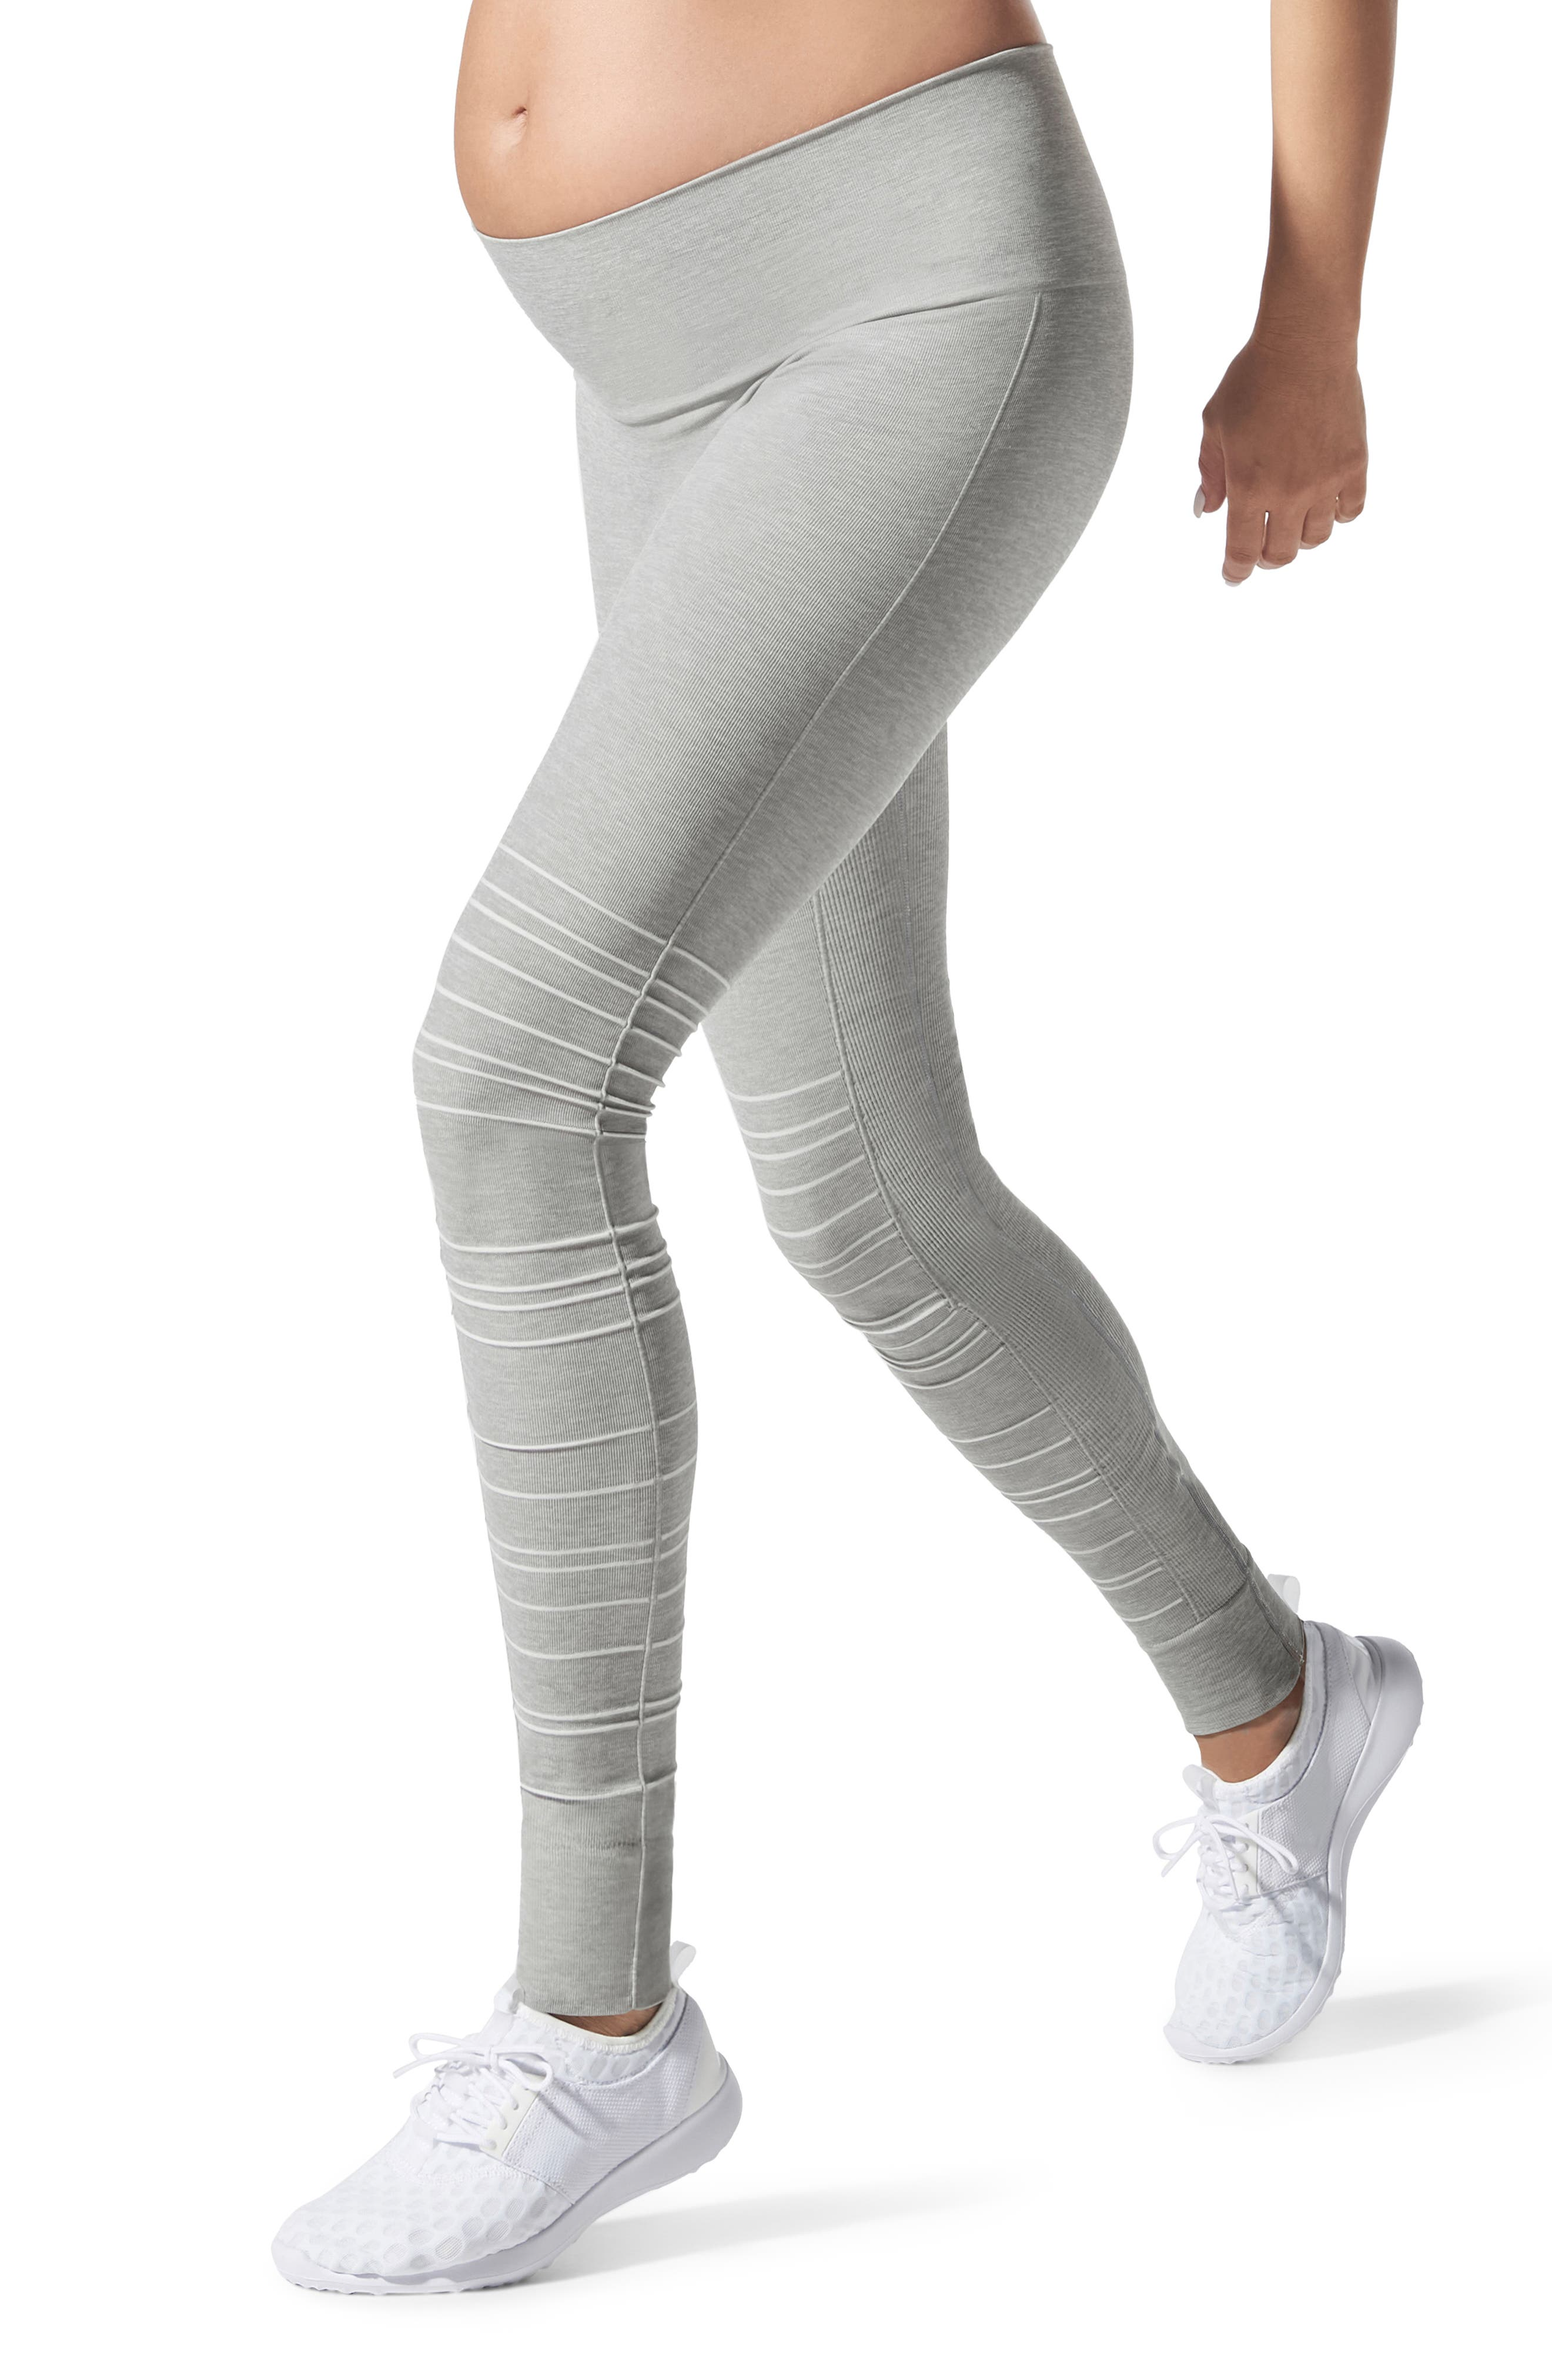 SportSupport<sup>®</sup> Hipster Cuffed Support Maternity/Postpartum Leggings,                         Main,                         color, DOVE GREY